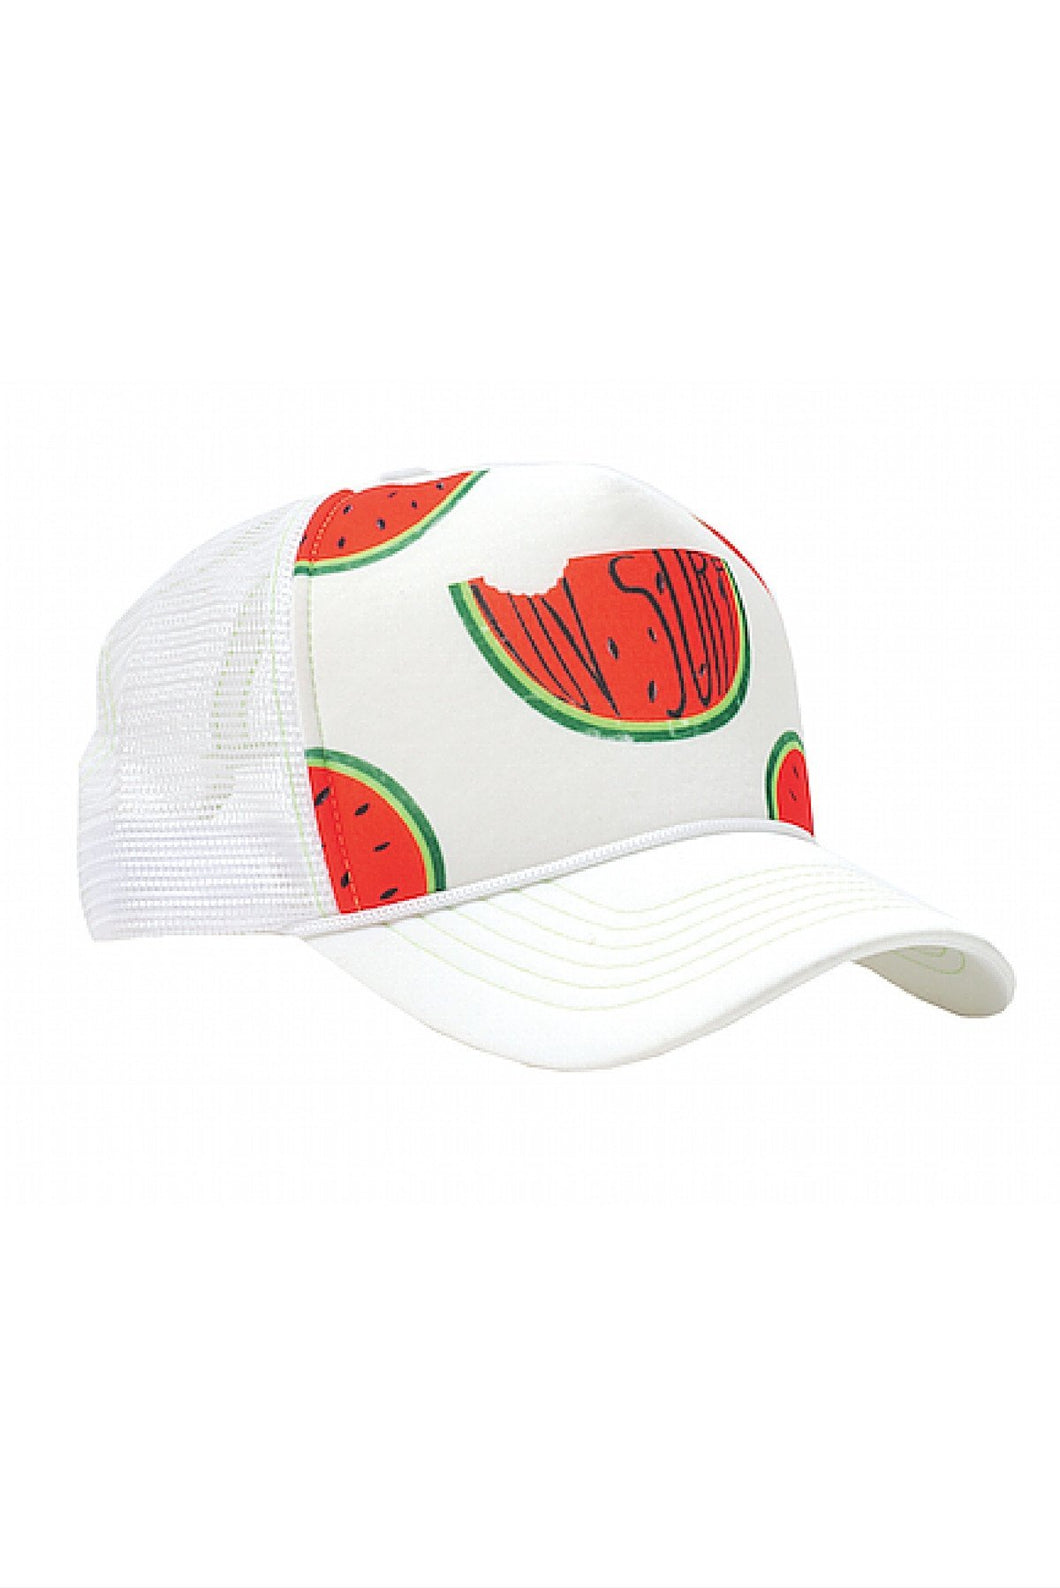 Luv Surf Watermelon Trucker Hat